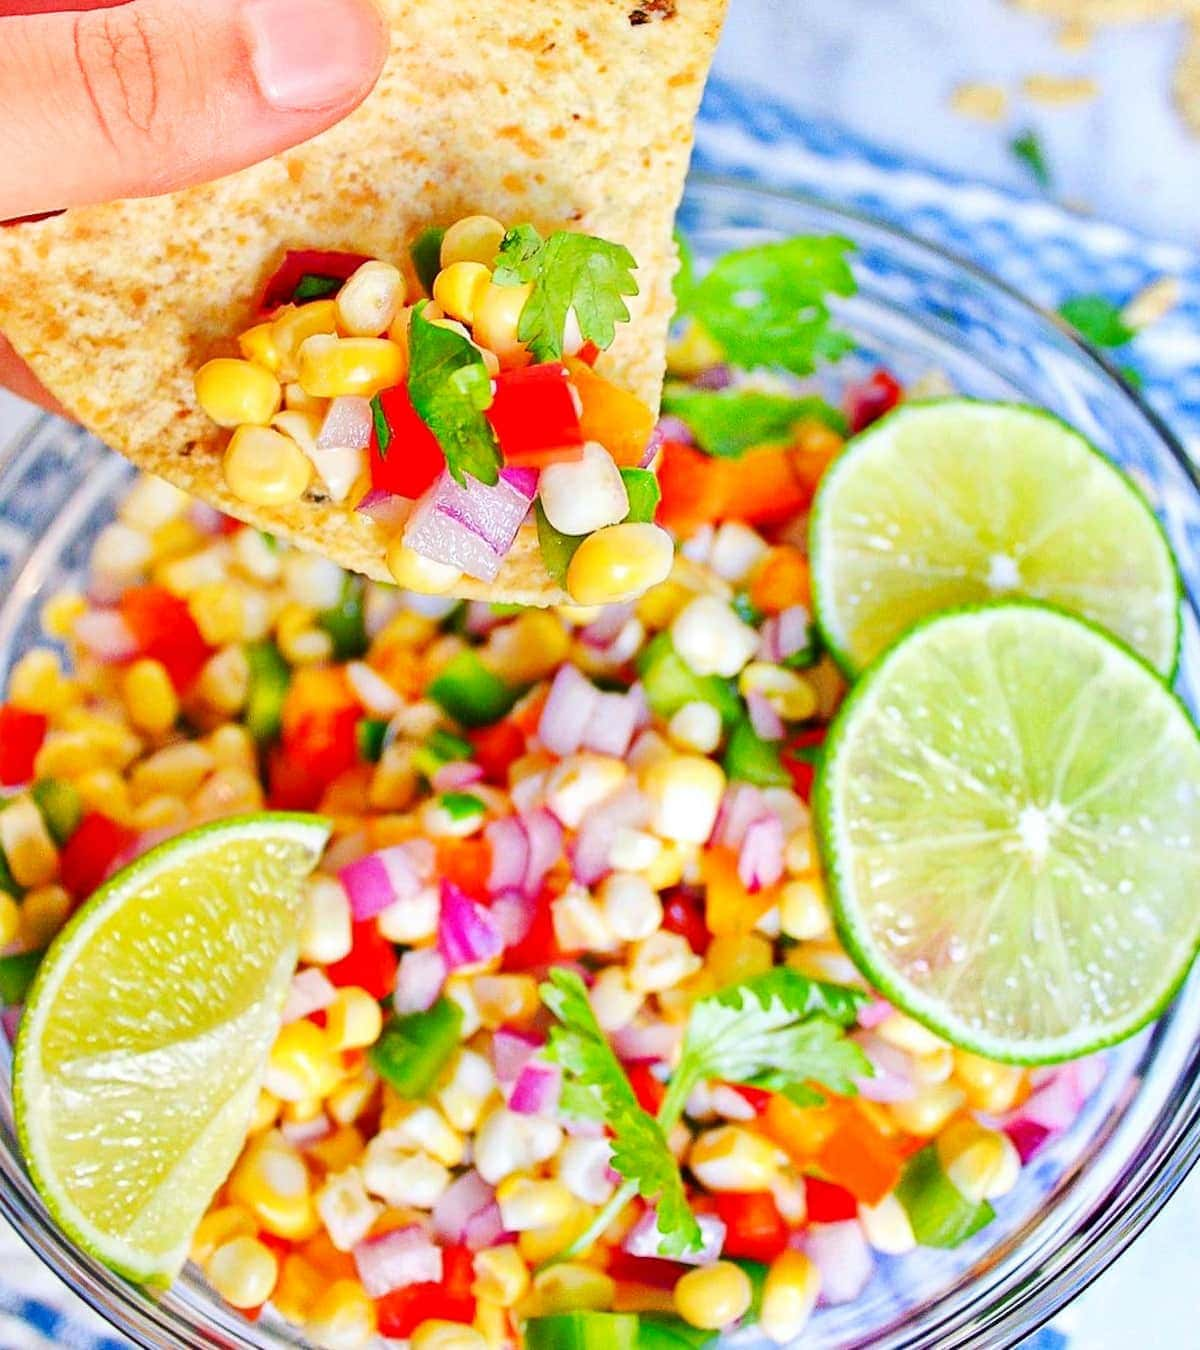 A hand holding a tortilla chip that is scooping corn salsa out of a round bowl.